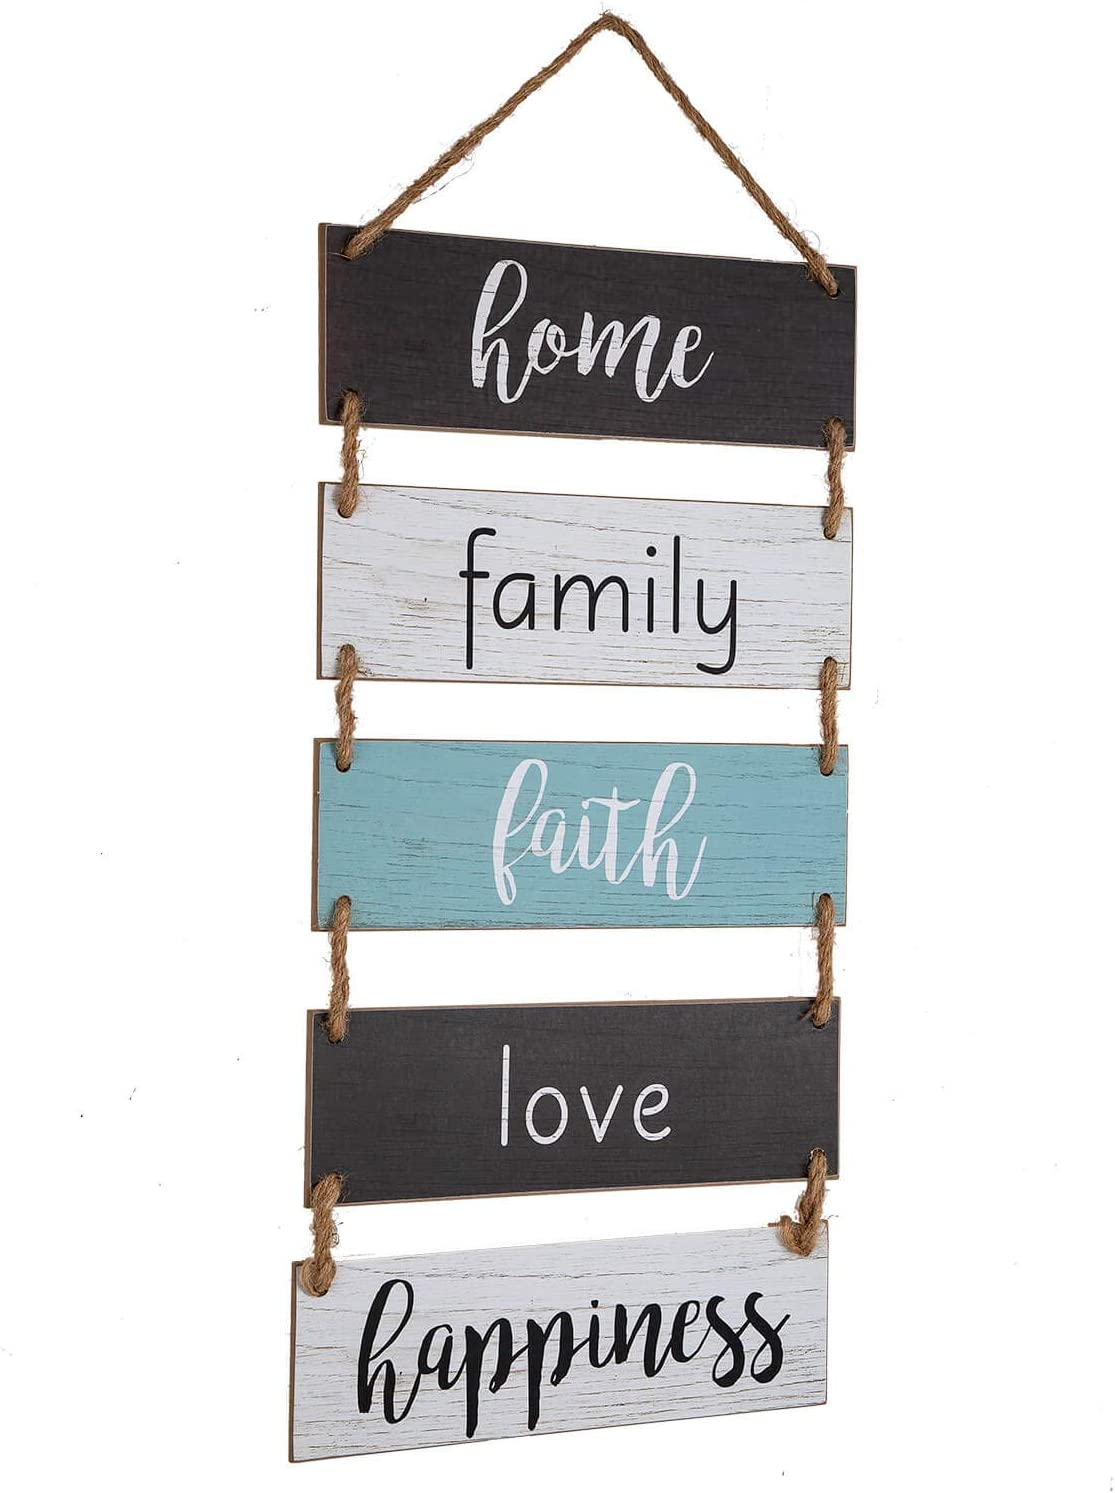 """Yankario Wall Hanging Decor Sign for Living Room Bedroom Bathroom Kitchen Office or more - Rustic Home Decoration Rope Hanging Wooden Sign """"Home Family Faith Love Happiness"""""""